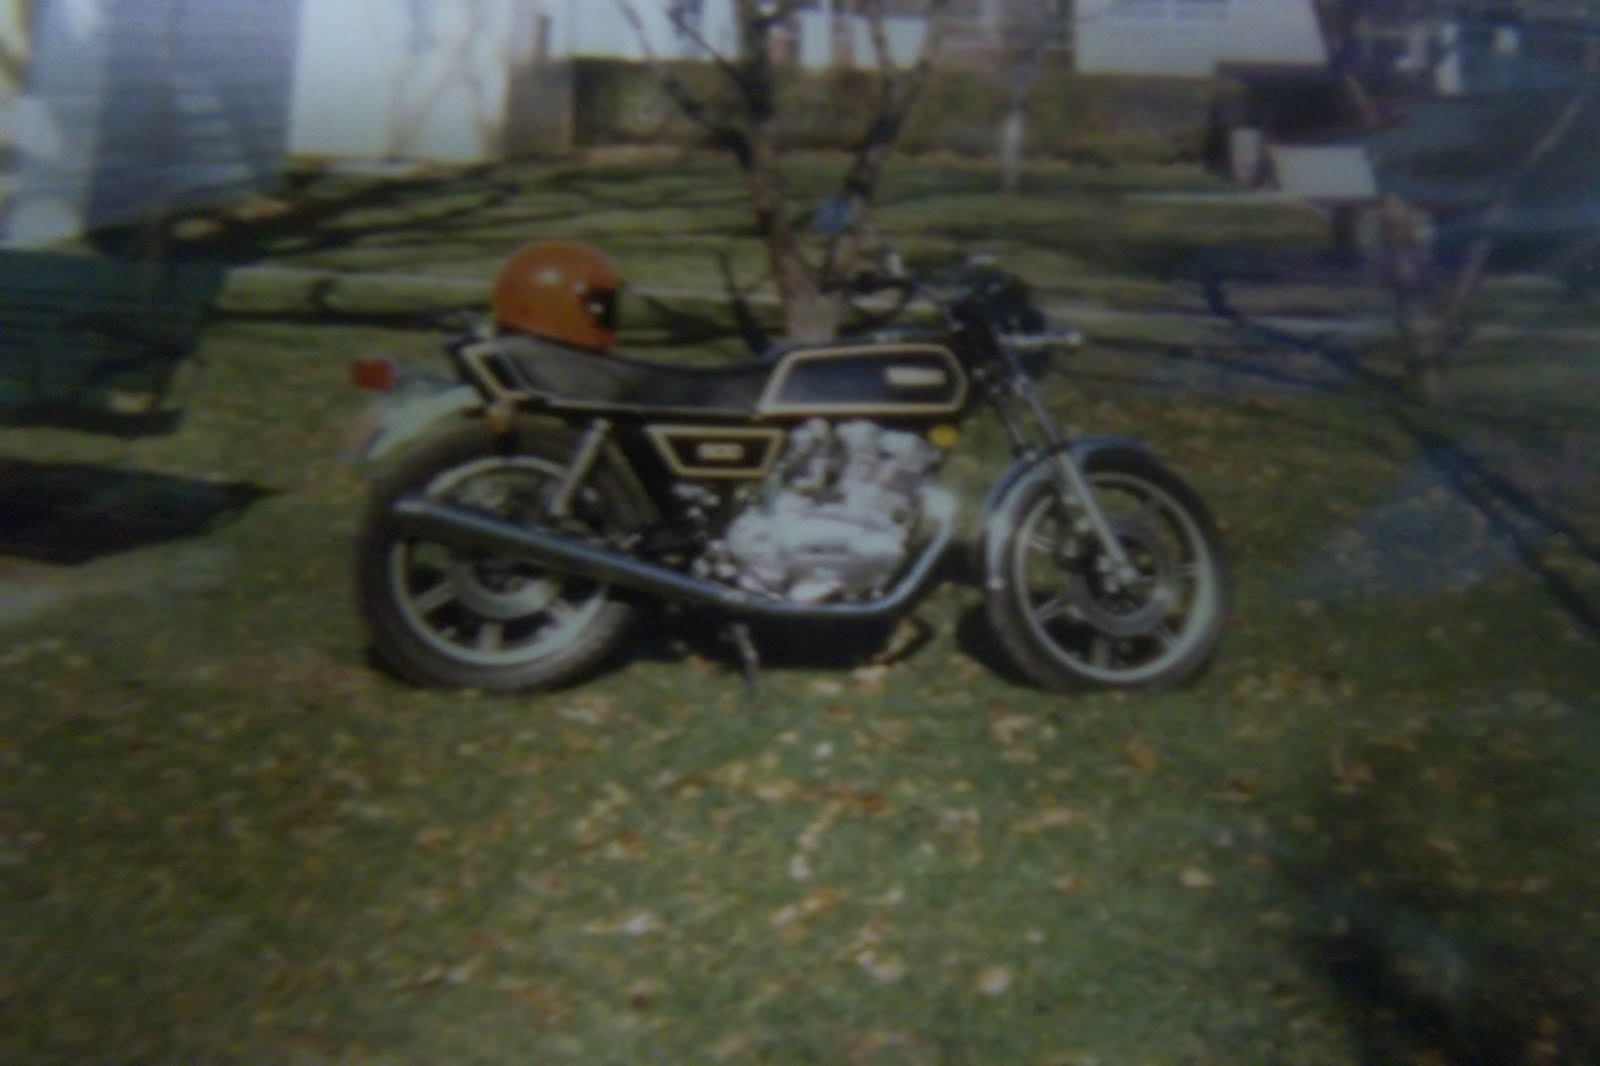 272292217676 as well Mikuni Bst Carburetors also Showthread together with 1977 Yamaha Xs360 1978 Yamaha Xs500 further Jims Fuzzy Pictures Of Fuzzy Xs500. on yamaha xs500 carb